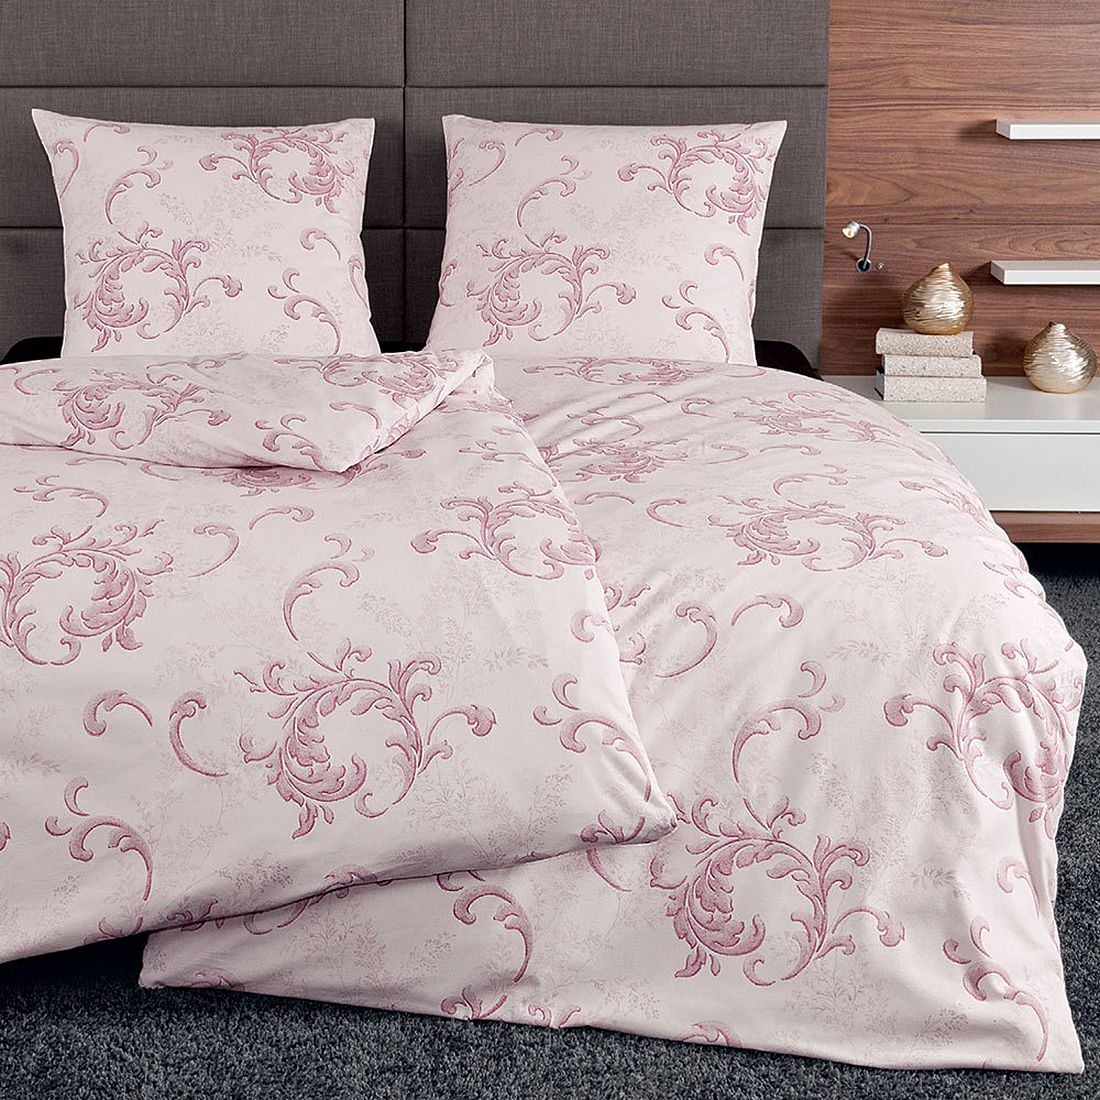 bettw sche chinchilla 7604 01 baumwolle pink 135x200 cm 80x80 cm janine kaufen. Black Bedroom Furniture Sets. Home Design Ideas